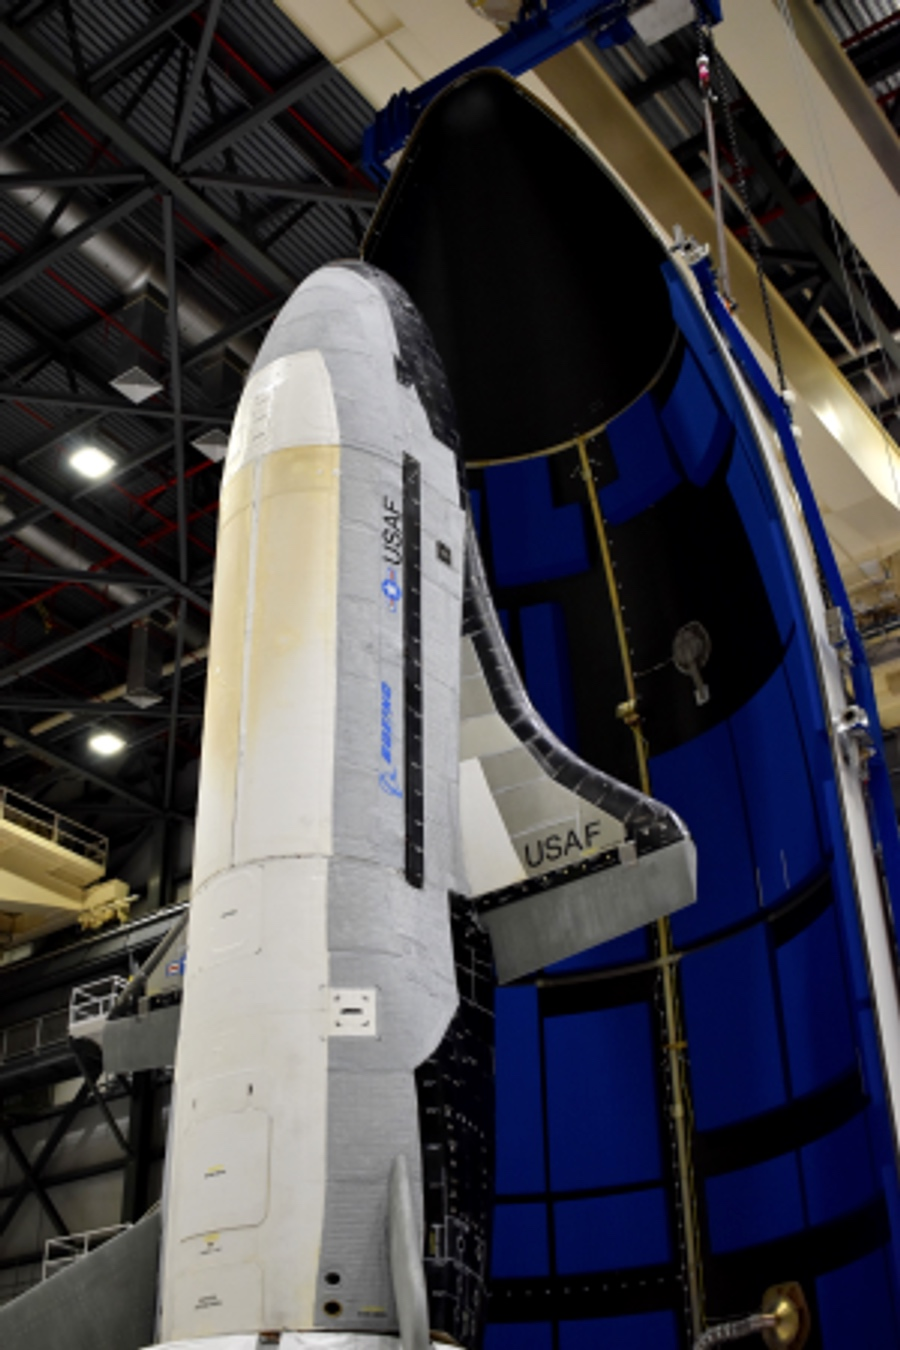 ss-200506-F-Encapsulated X-37B Orbital Test Vehicle for United States Space Force-7 mission.psdb